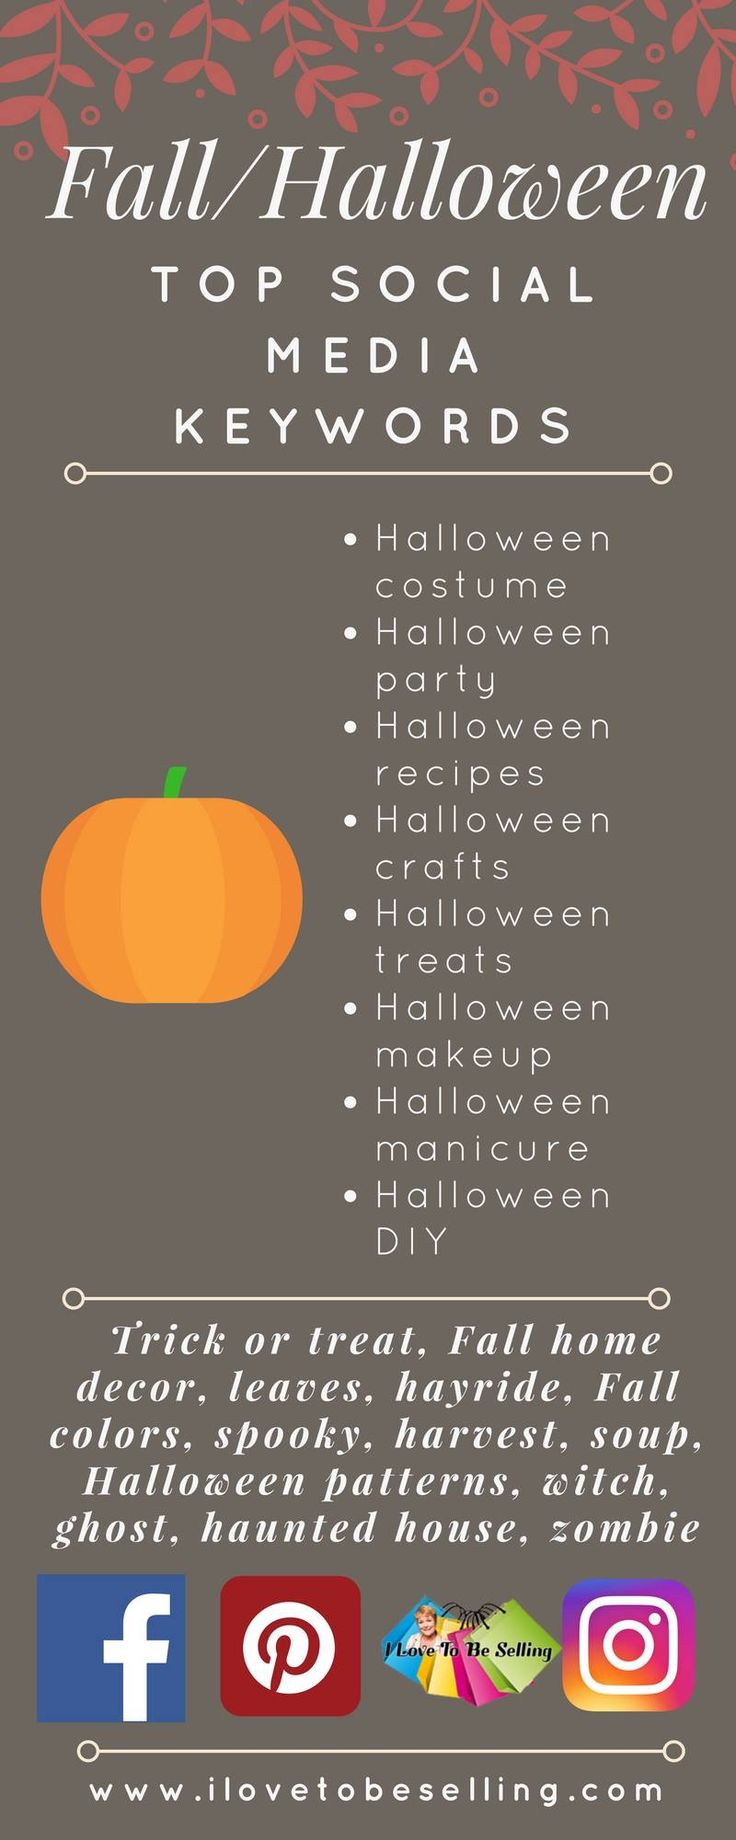 Top search words for Halloween and Fall you can use for social media posts for your eBay items! I've got more social media for you sellers. Head over to ->http://bit.ly/2tKJBah